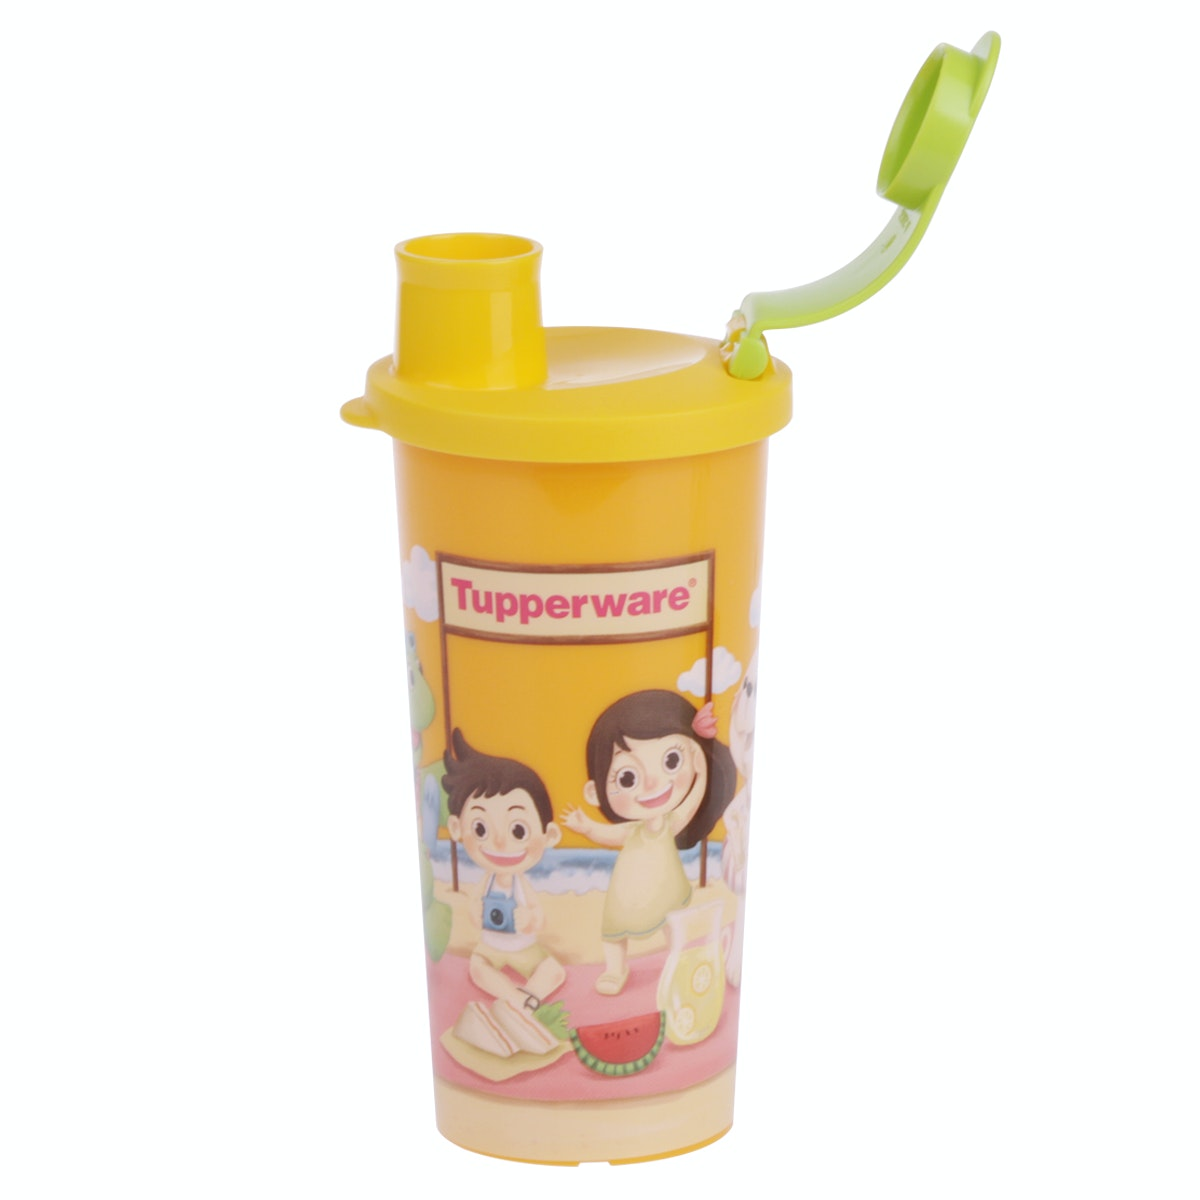 Tupperware Tupperware Fun Tumbler Beach